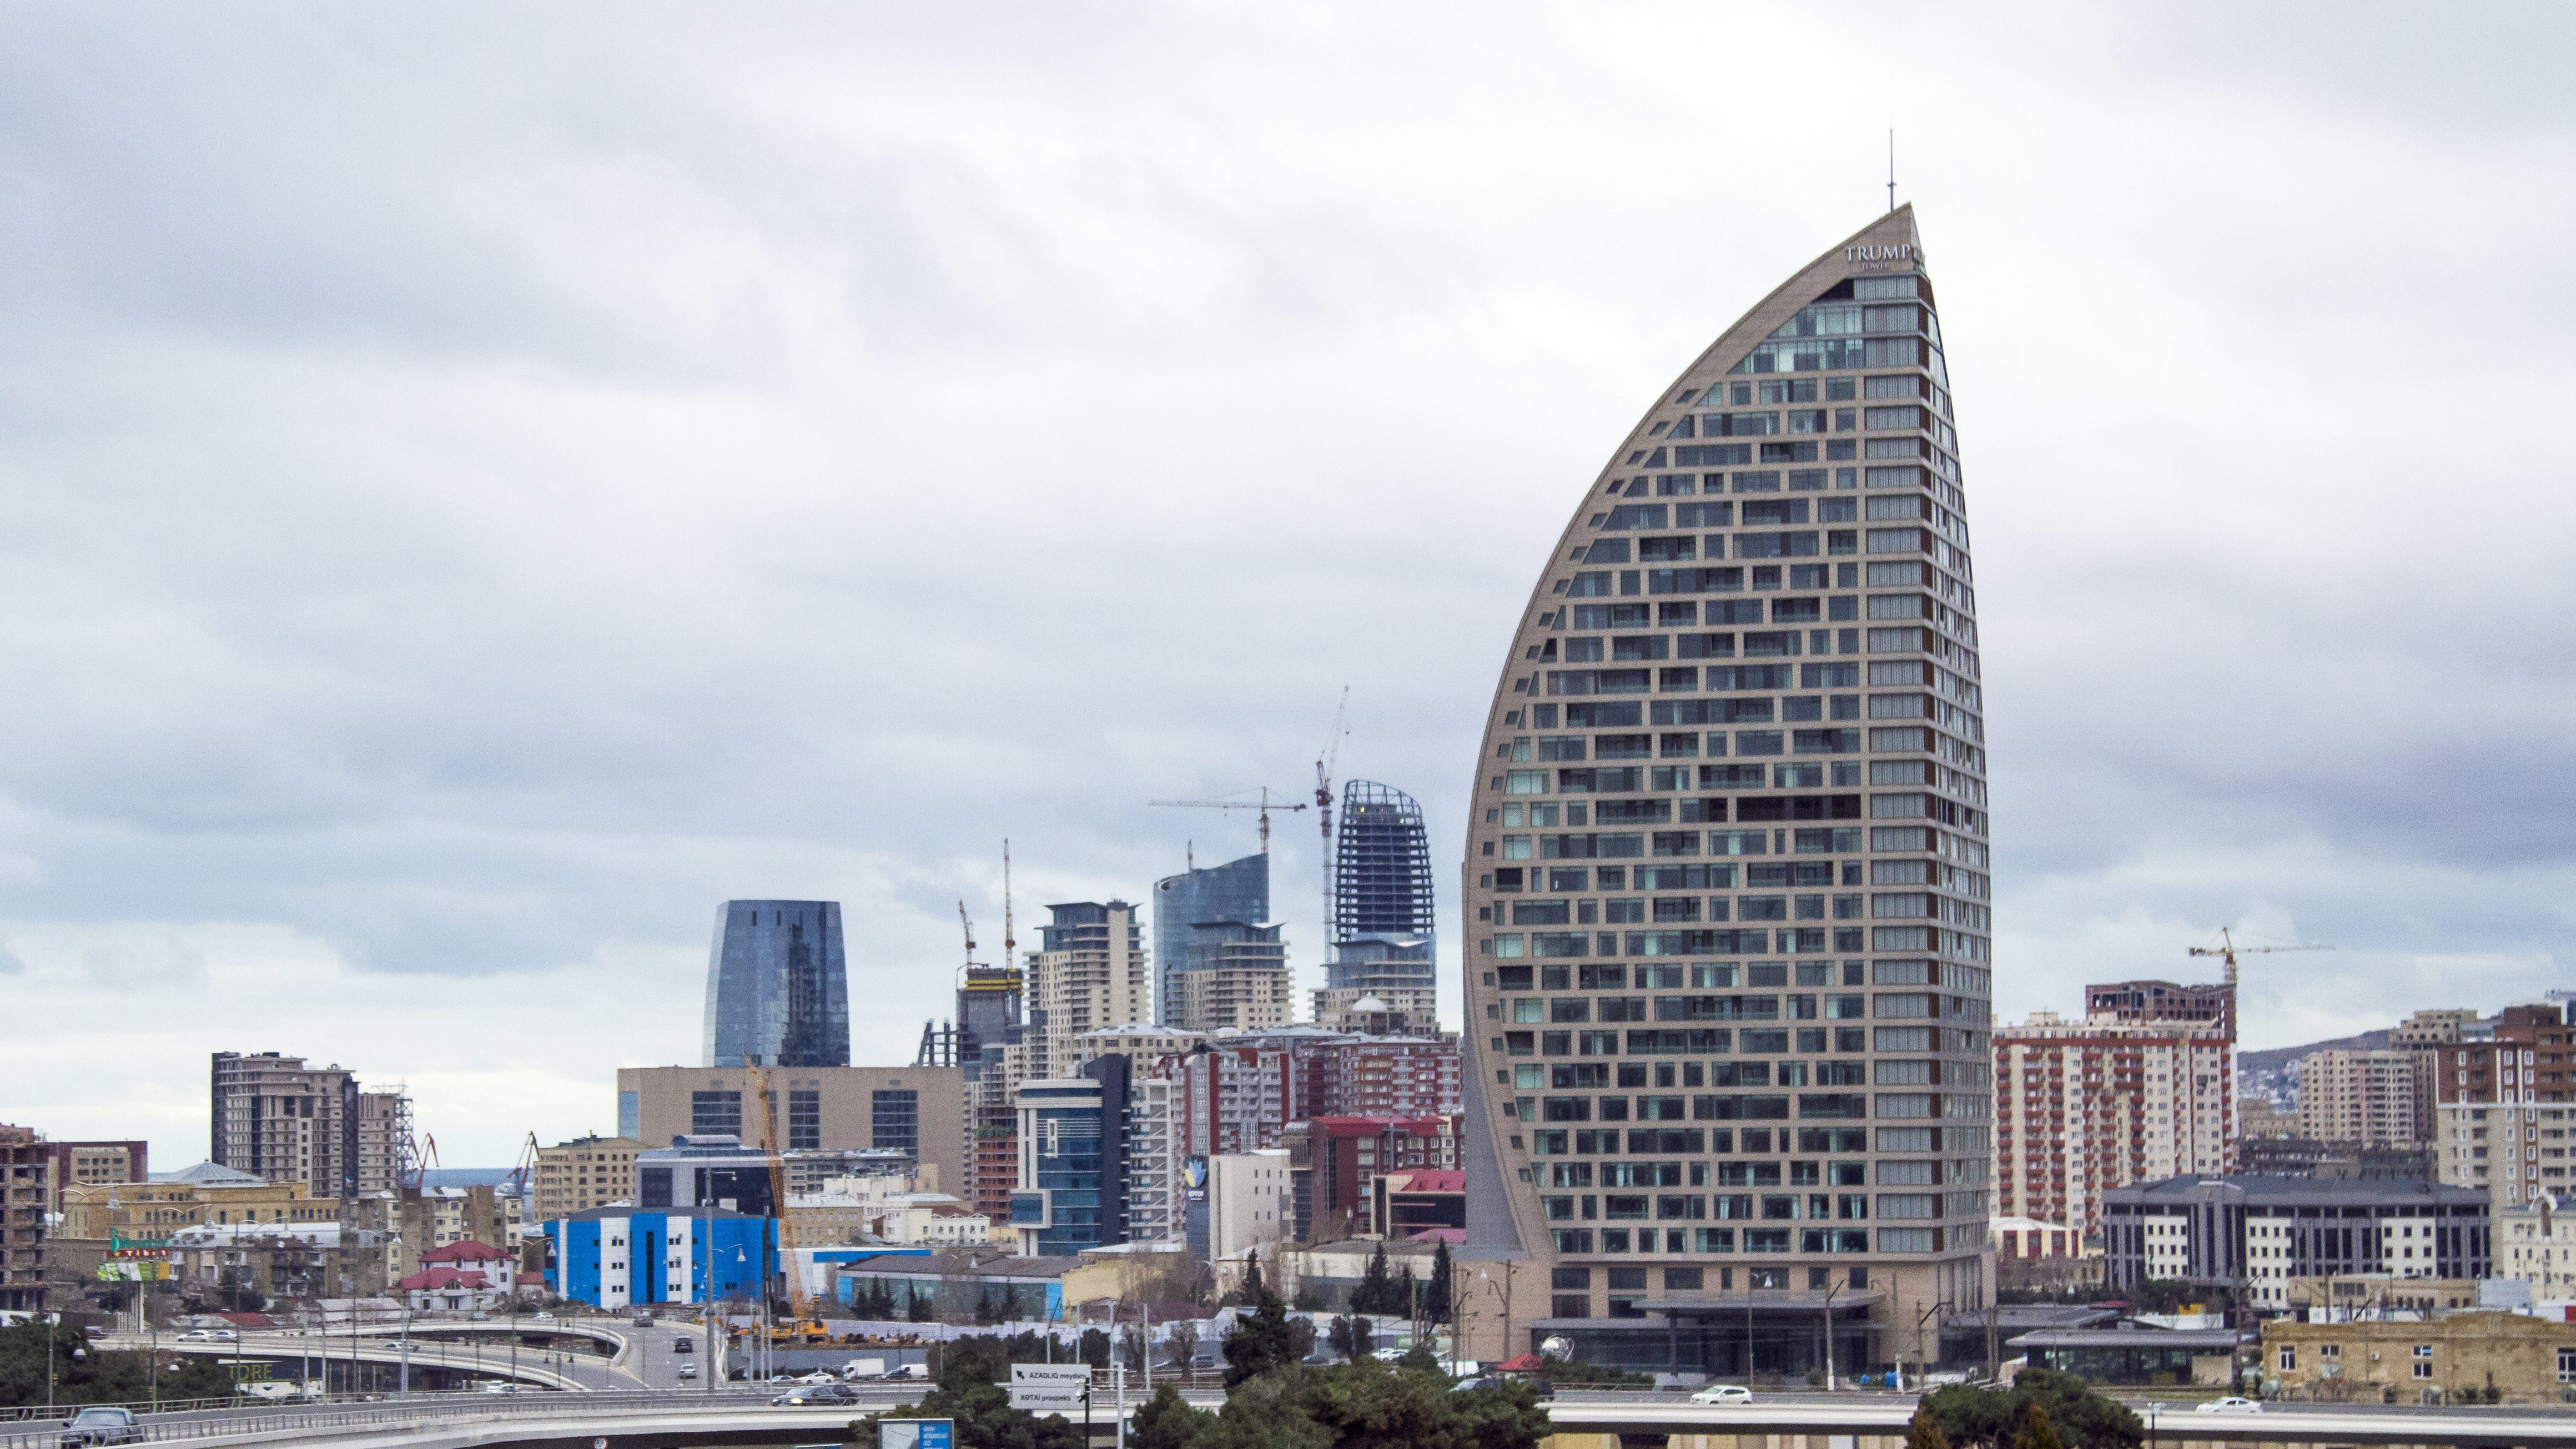 "FILE - In this Feb. 19, 2016, file photo, The Trump International Hotel, the highest building, is seen in Baku, Azerbaijan. Just six months before he launched his presidential campaign, Donald Trump announced a new real estate project in Baku. The partner: the 35-year-old son of an Azerbaijani minister suspected by U.S. diplomats of corruption and laundering money for Iran's military and described by them as ""notoriously corrupt."" Now, only weeks after Ivanka Trump released a publicity video of the nearly finished project, references to the Baku project have disappeared from Trump's website. (AP Photo/Aida Sultanova, File)"